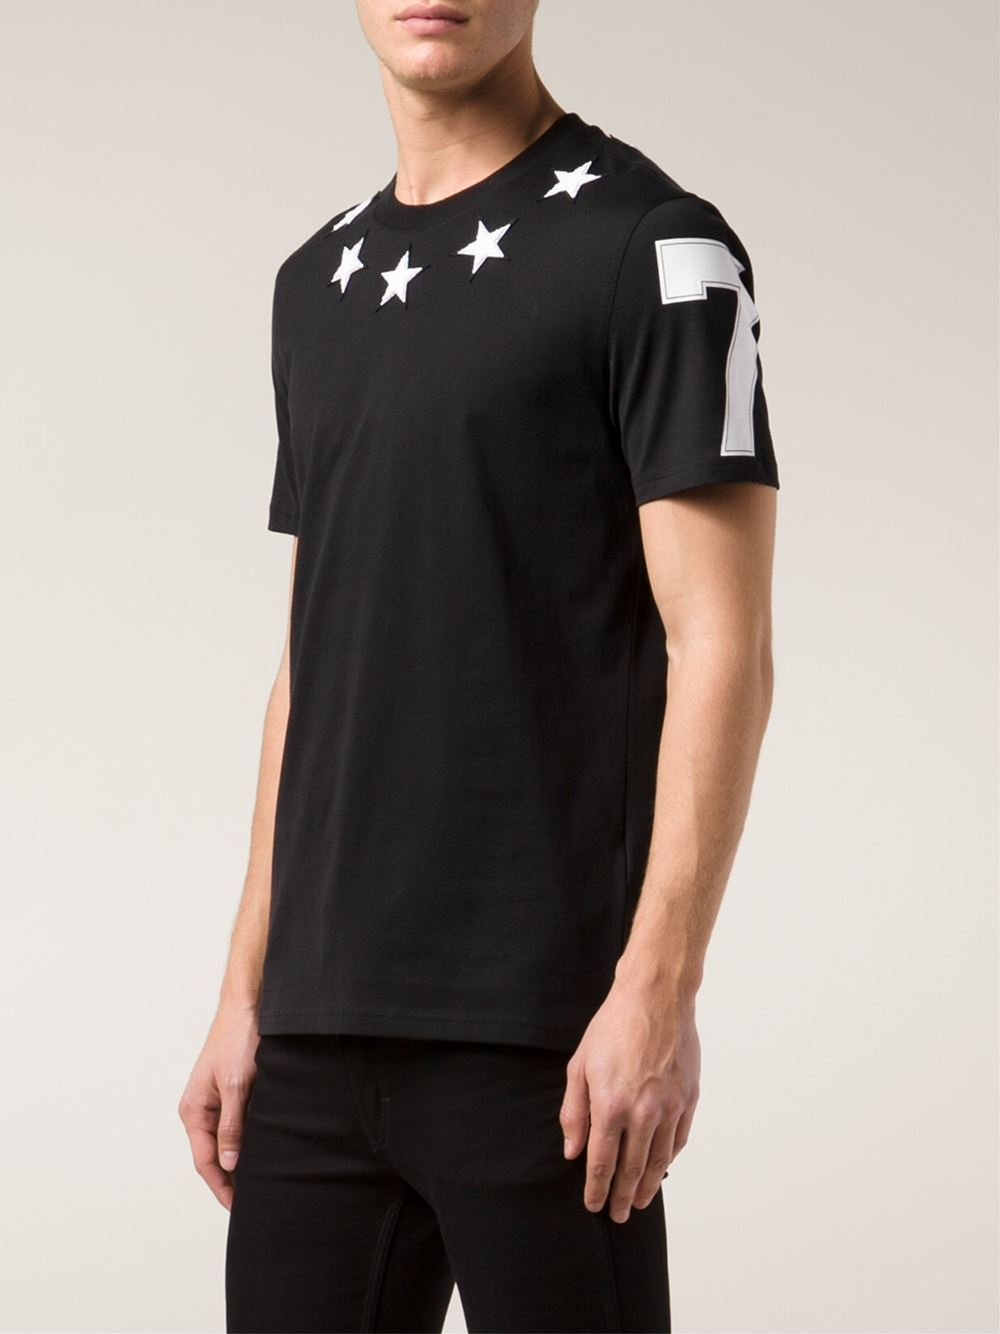 Givenchy Terry Cloth Star T Shirt In Black For Men Lyst